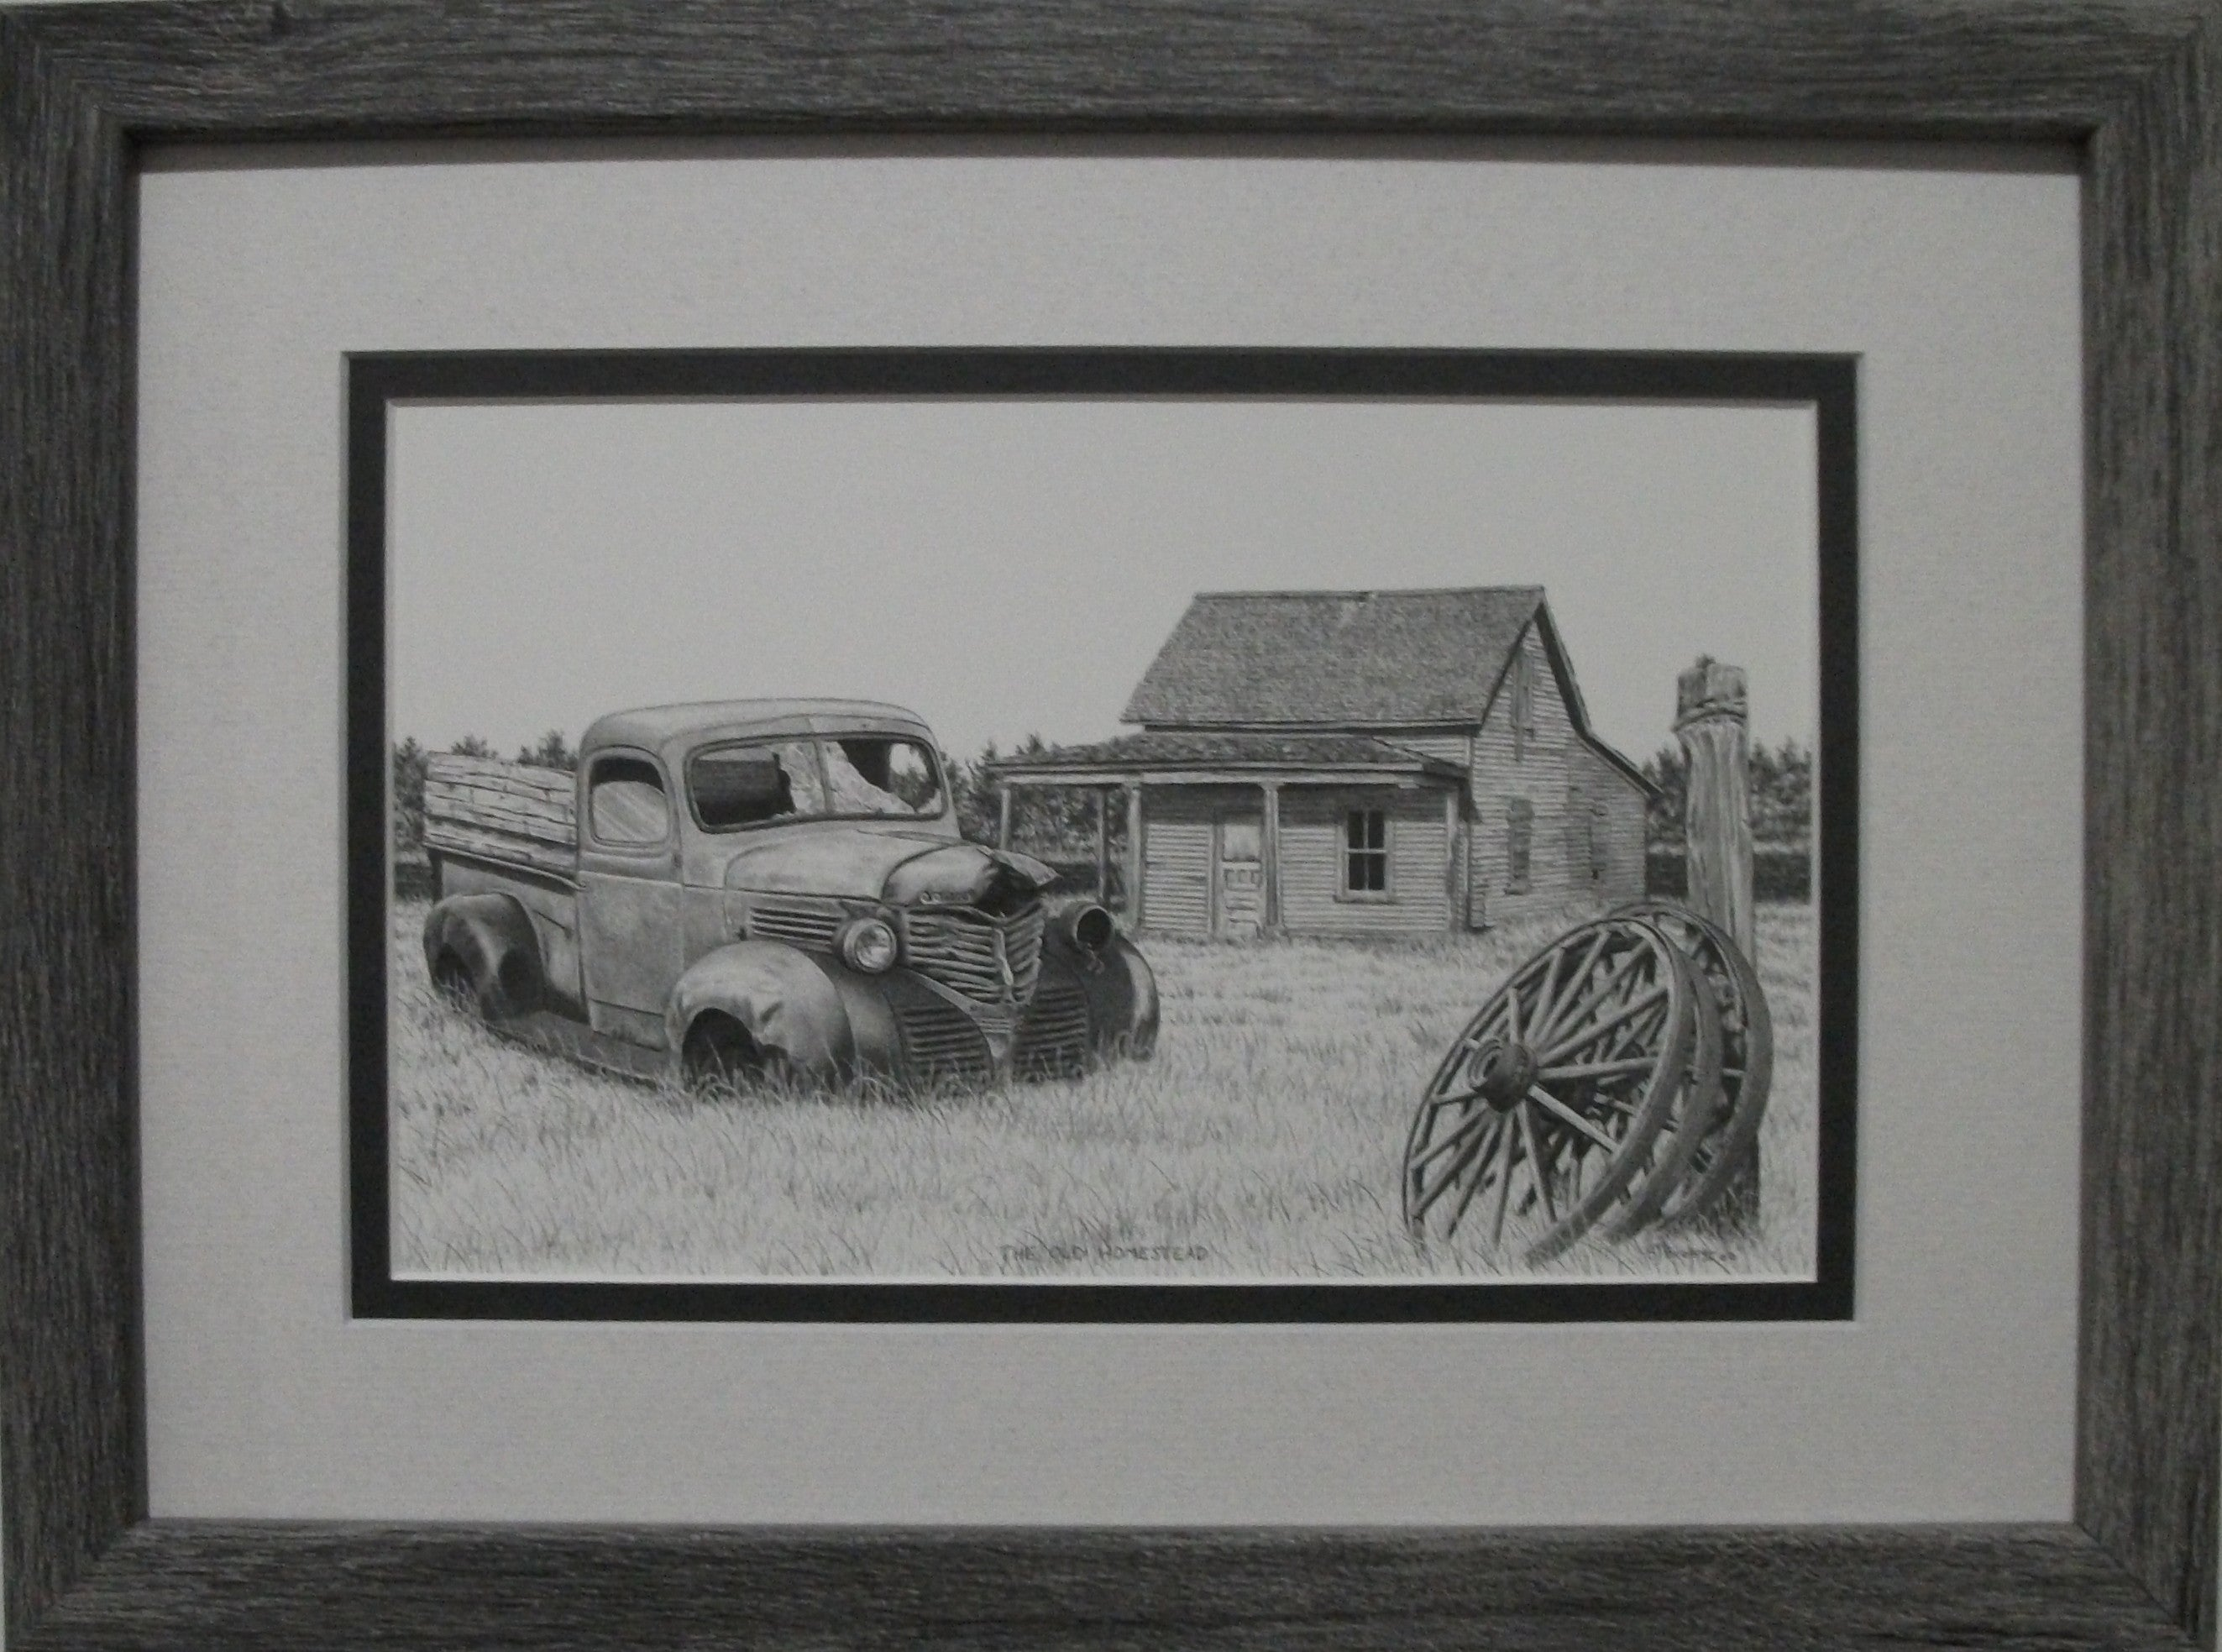 The Old Homestead by Bernie Brown